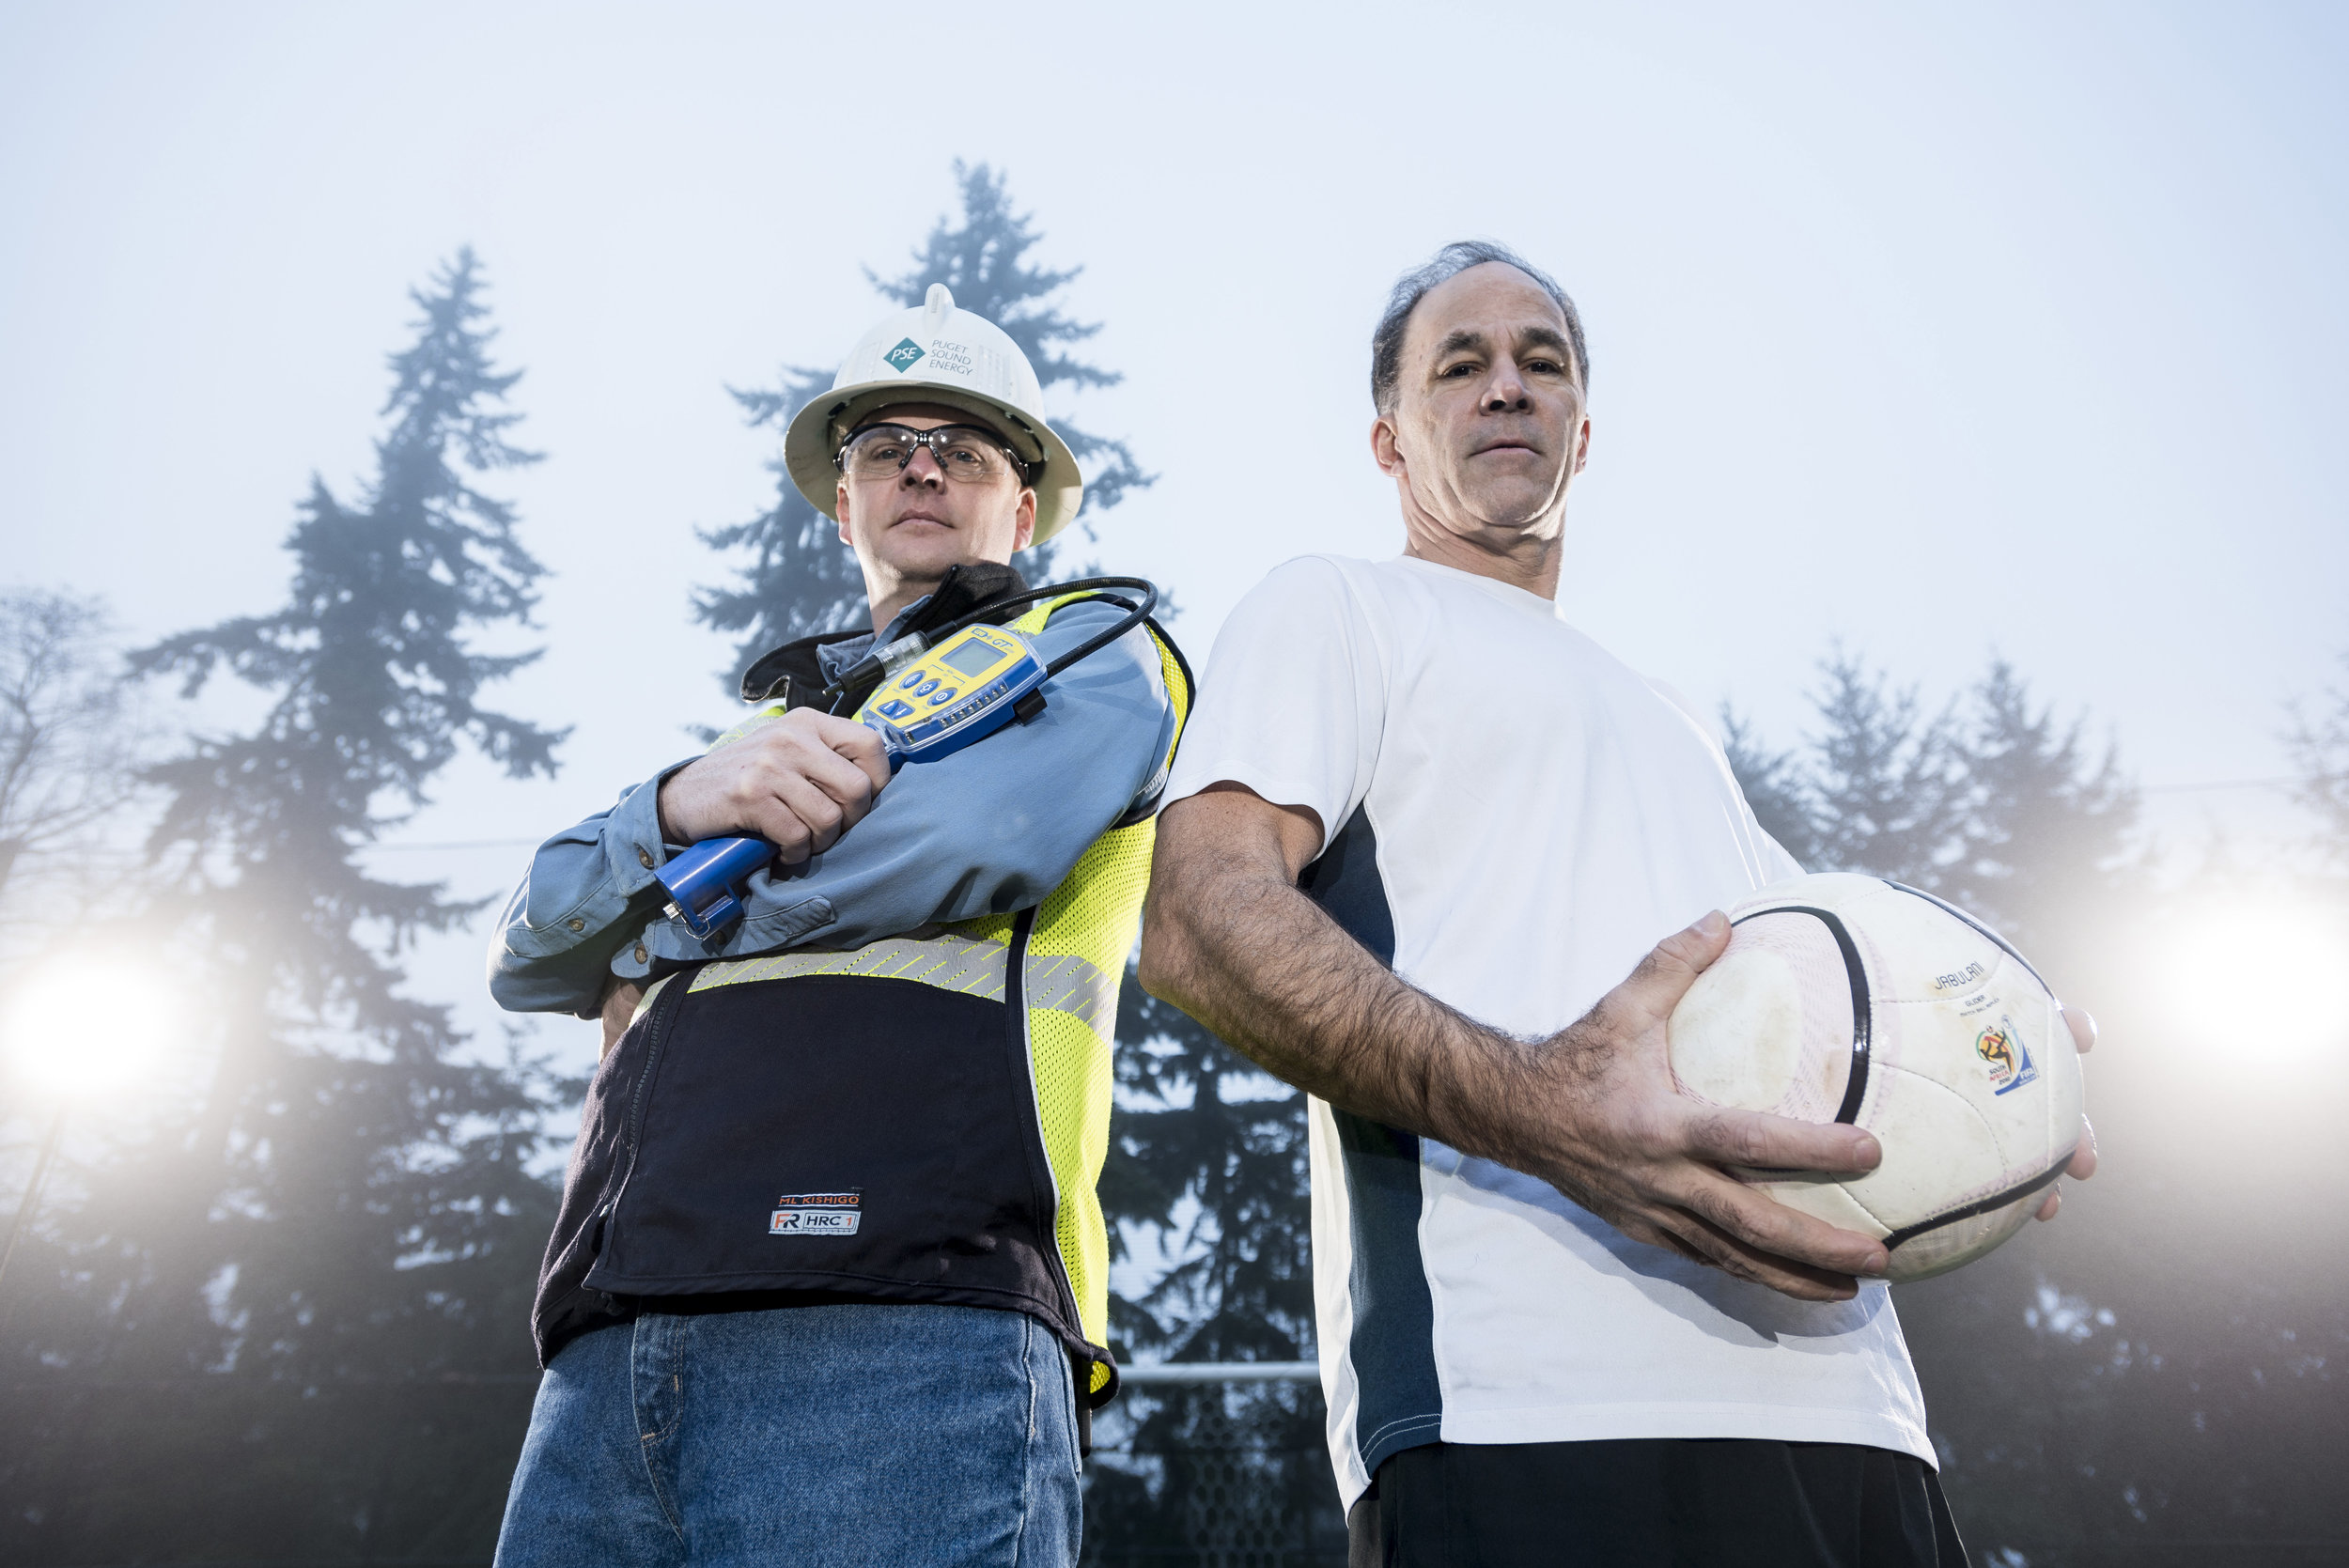 Taken for an internal campaign on industrial athletes.  Photo courtesy of and copyright Puget Sound Energy.